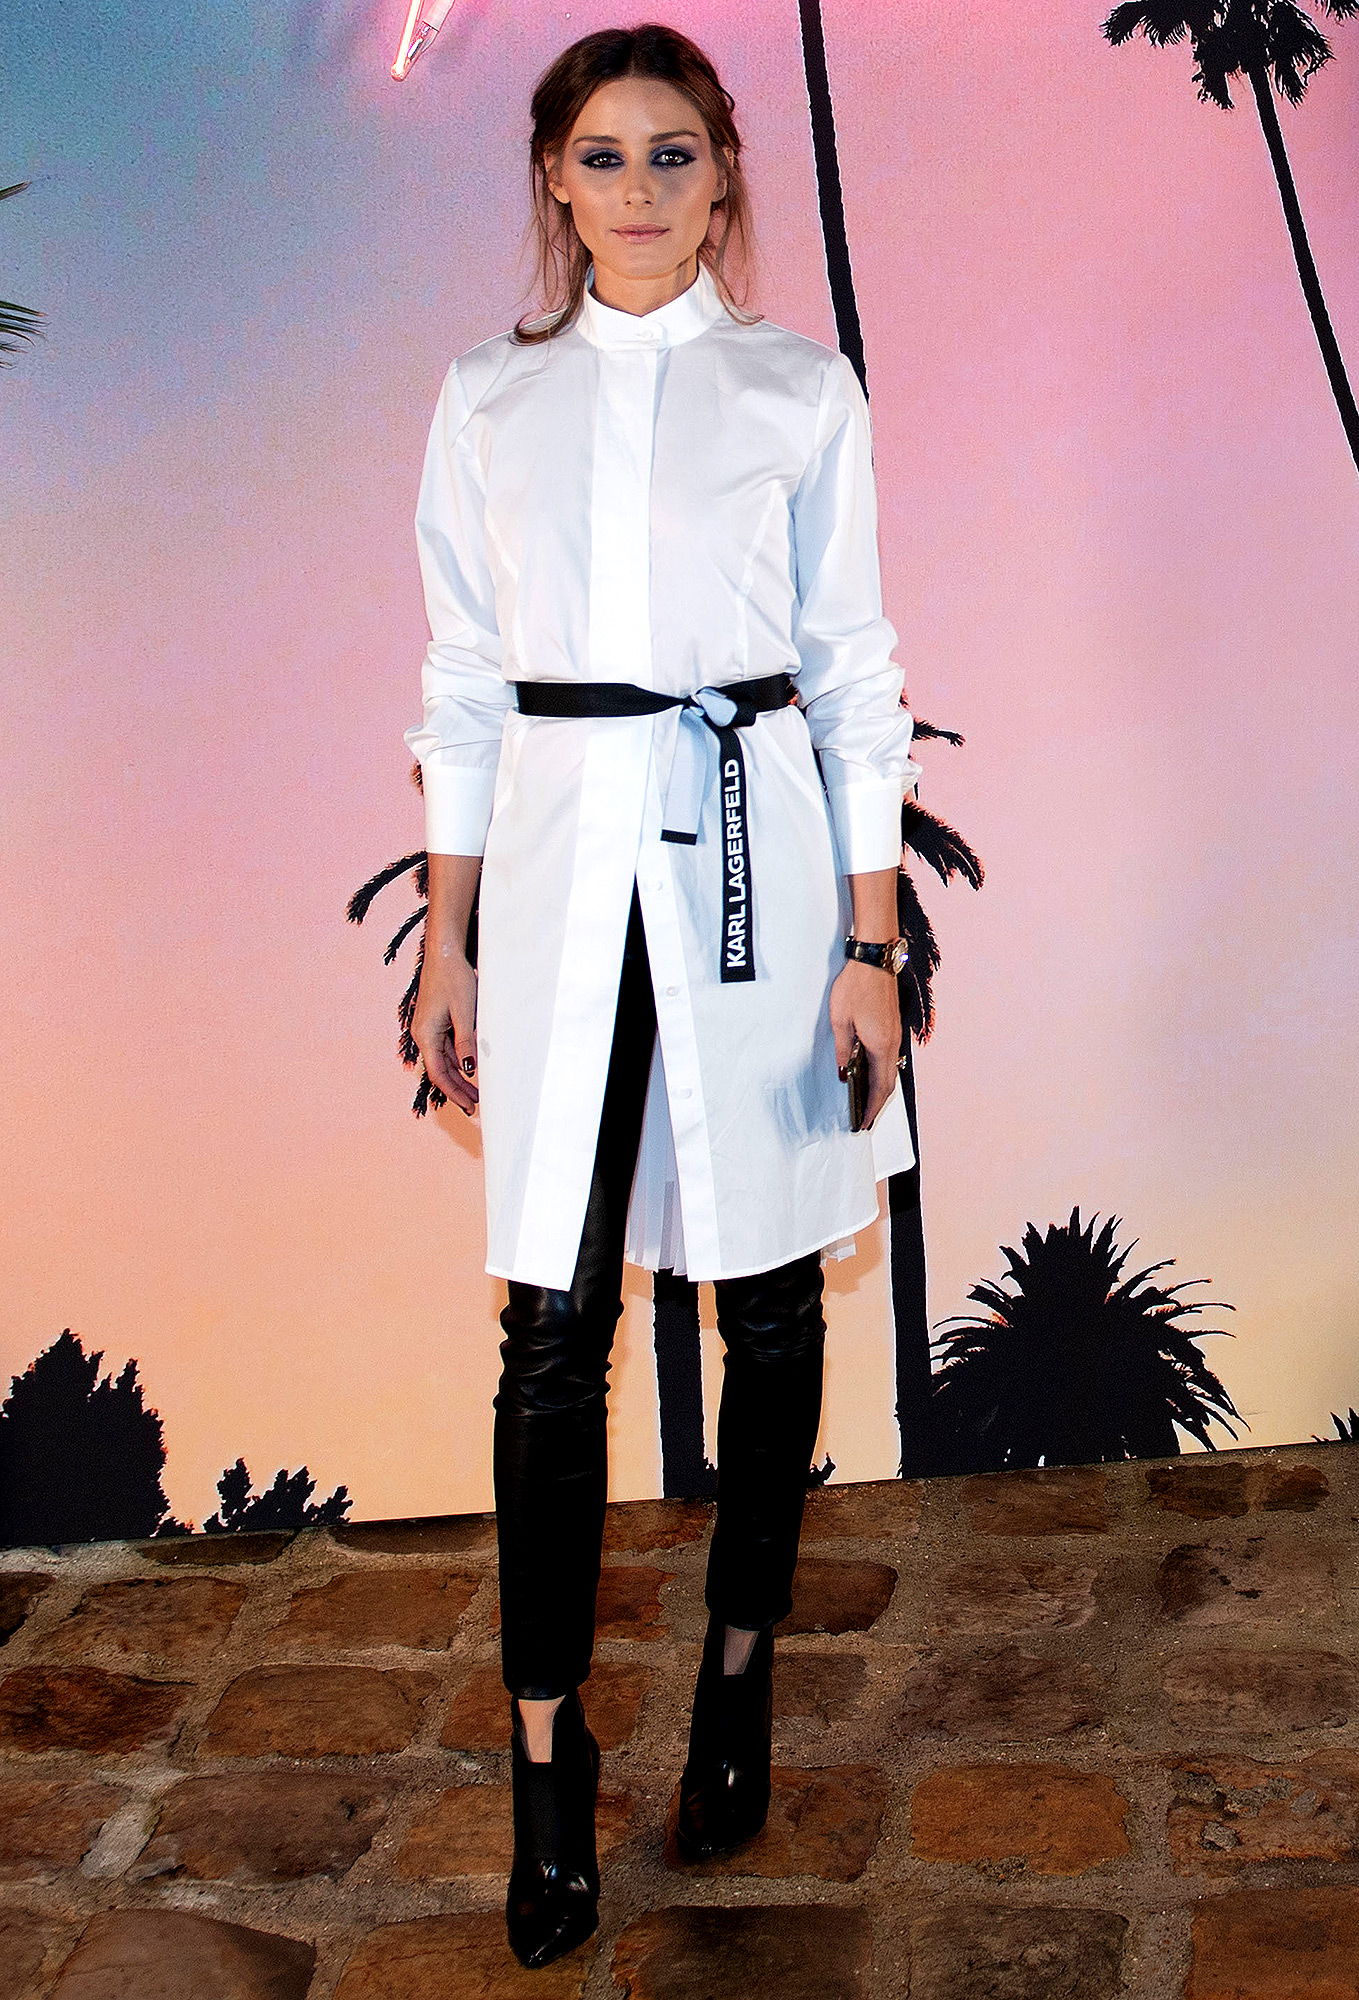 Karl x Kaia collaboration capsule collection - Paris Fashion Week Women's Collections S/S 2019, France - 02 Oct 2018